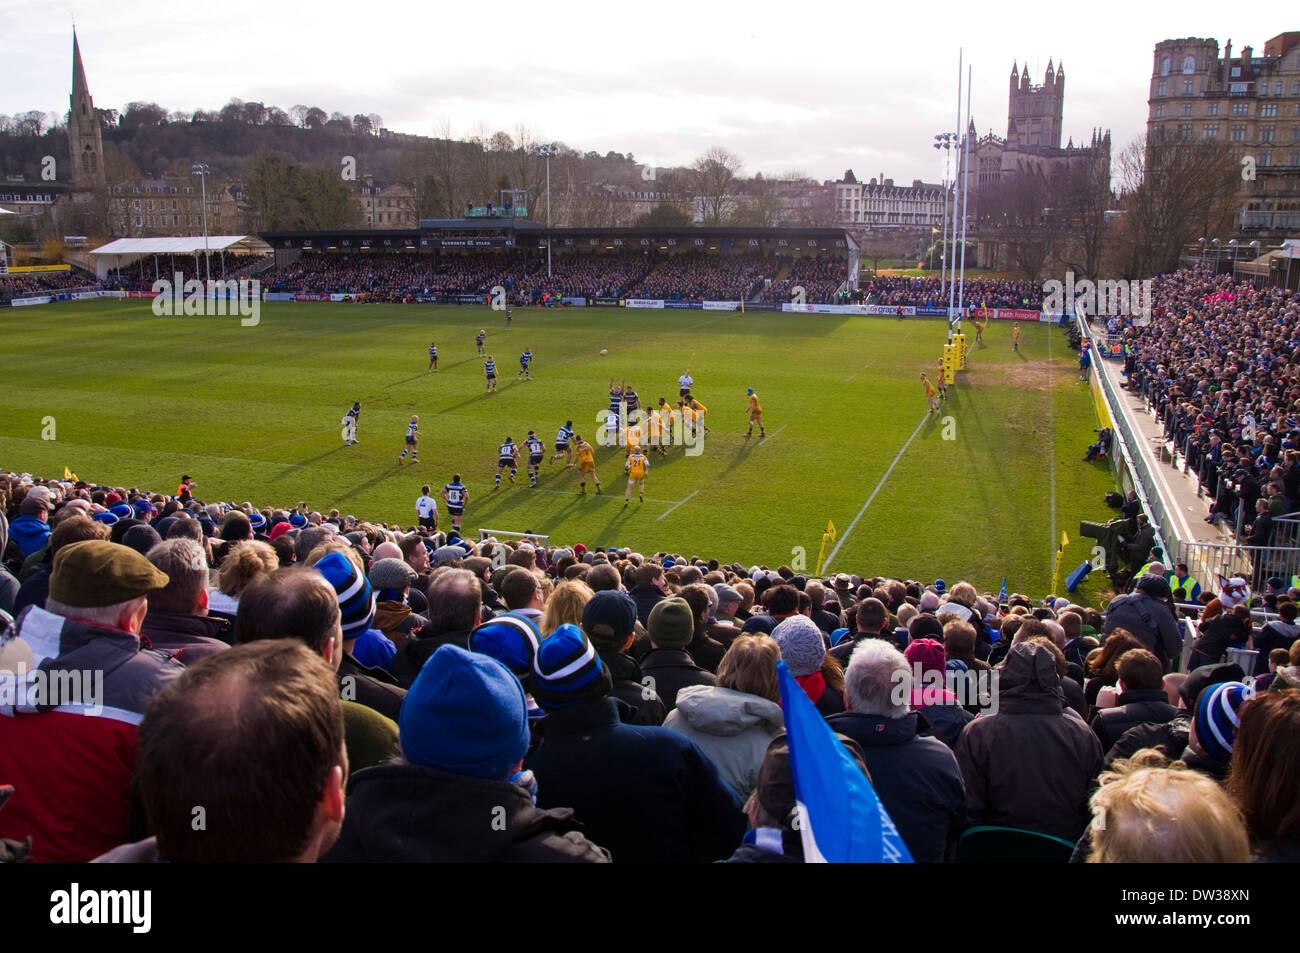 Les gens qui regardent un match de rugby au Recreation Ground connu sous le nom de loisir à Bath Somerset on 22 février 2014 Baignoire v London Wasps Photo Stock